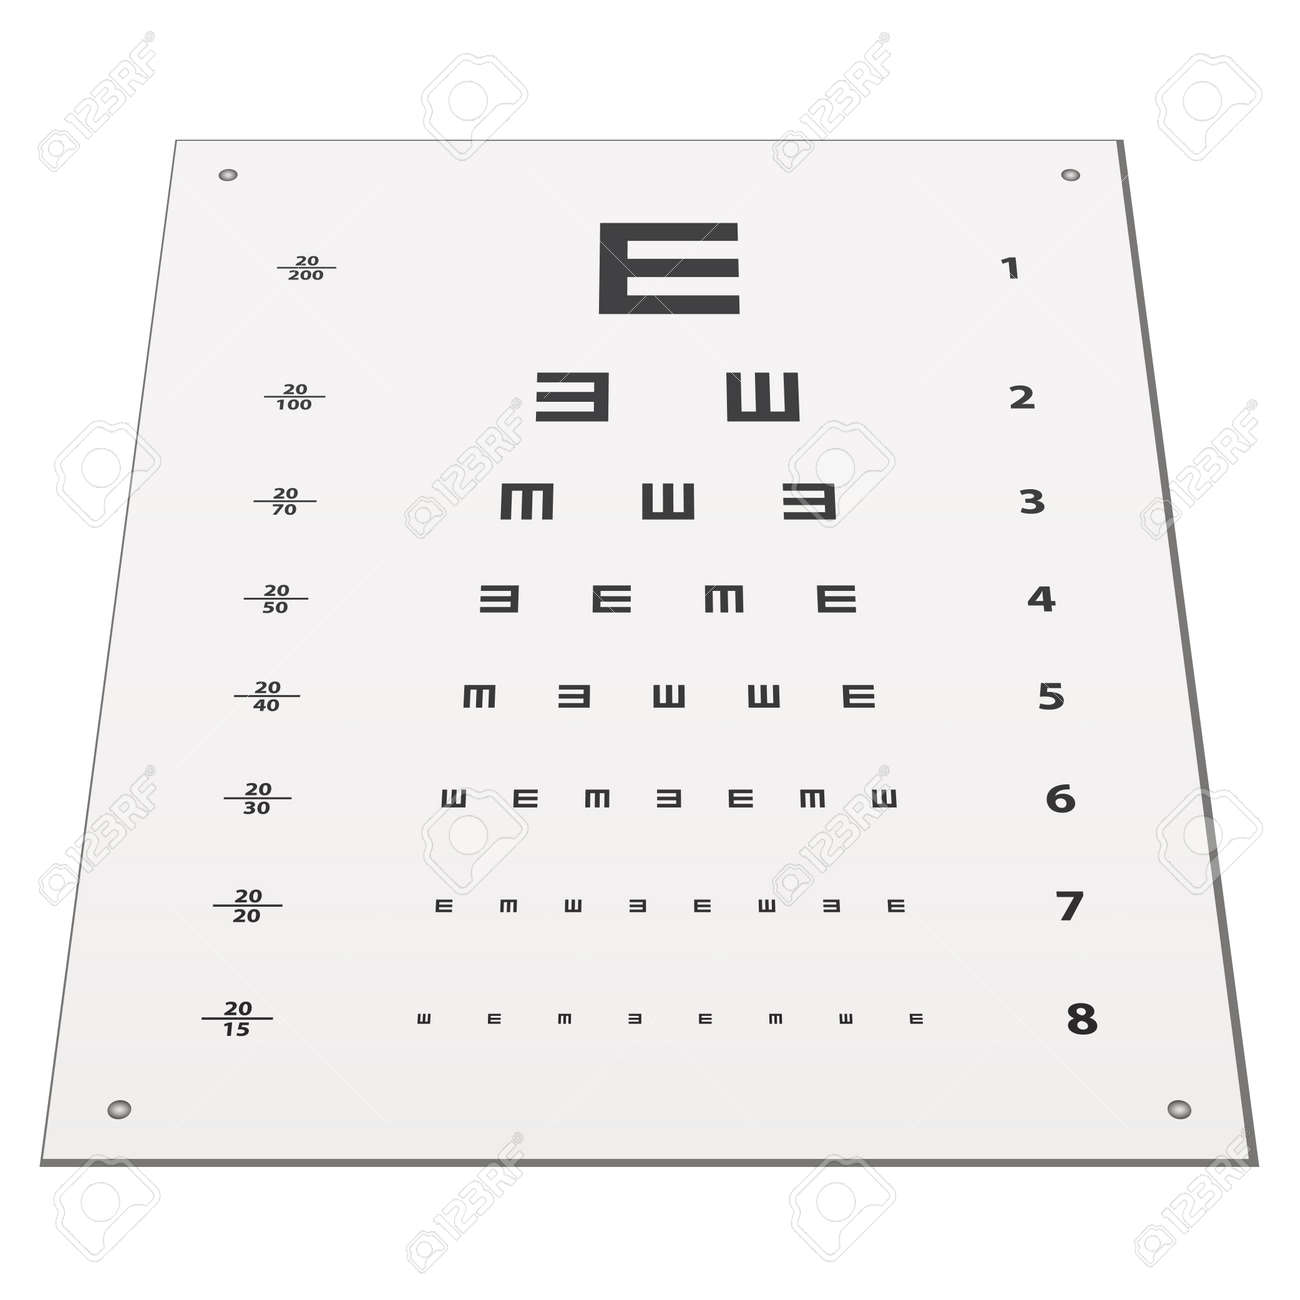 Vector Snellen Eye Test Chart Royalty Free Cliparts, Vectors, And ...